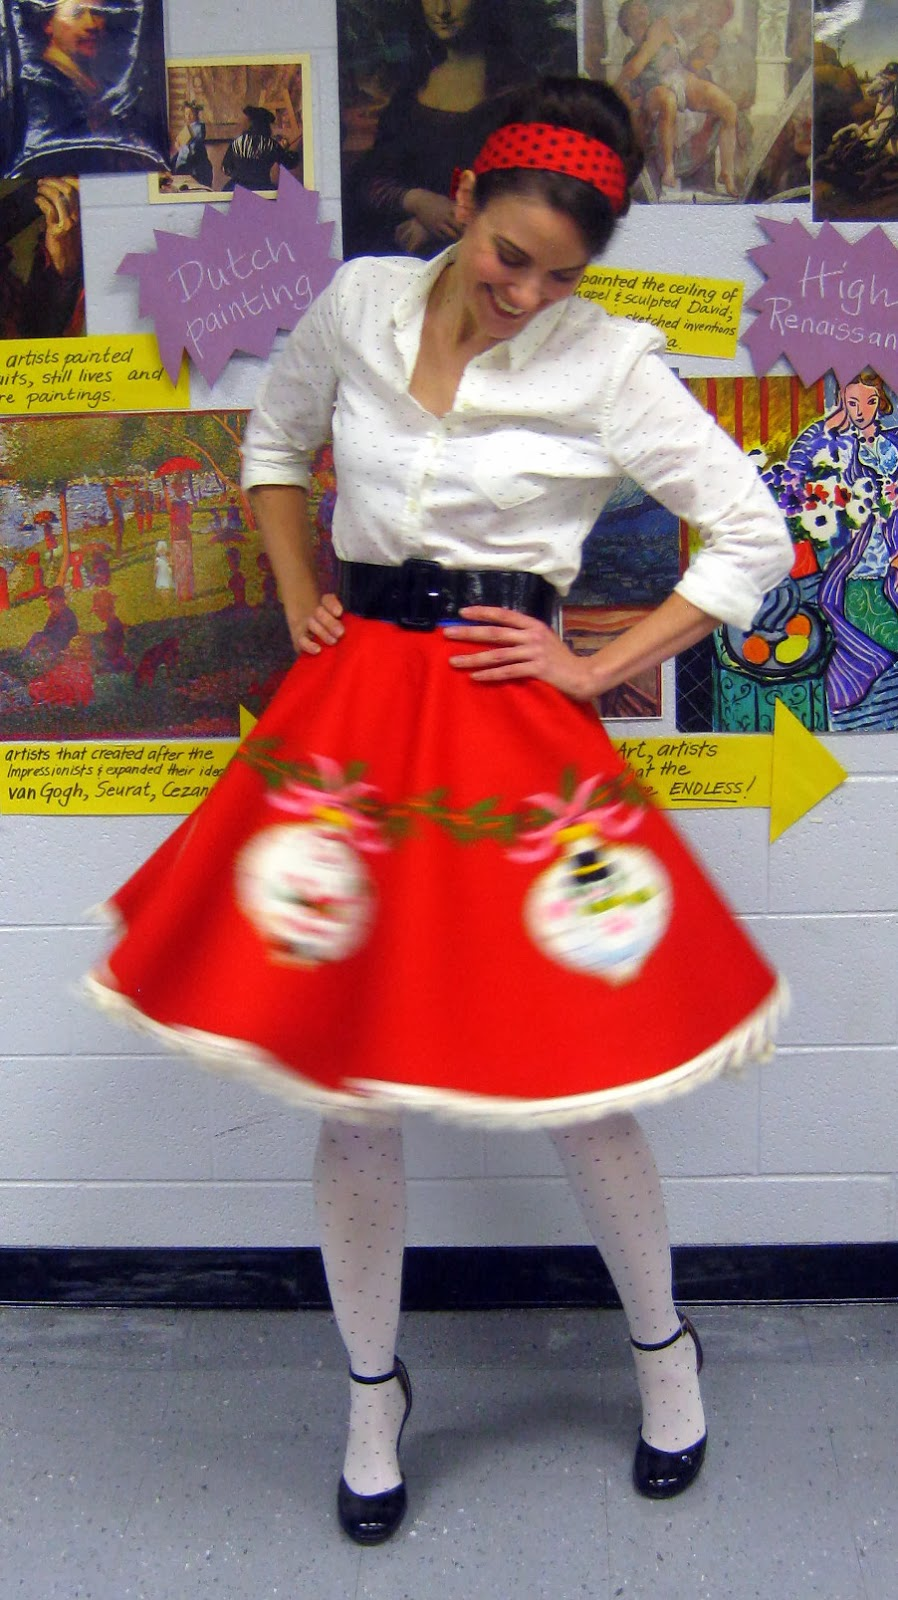 Cassie stephens diy tree skirt to lady skirt in 60 minutes or less wednesday december 4 2013 solutioingenieria Gallery